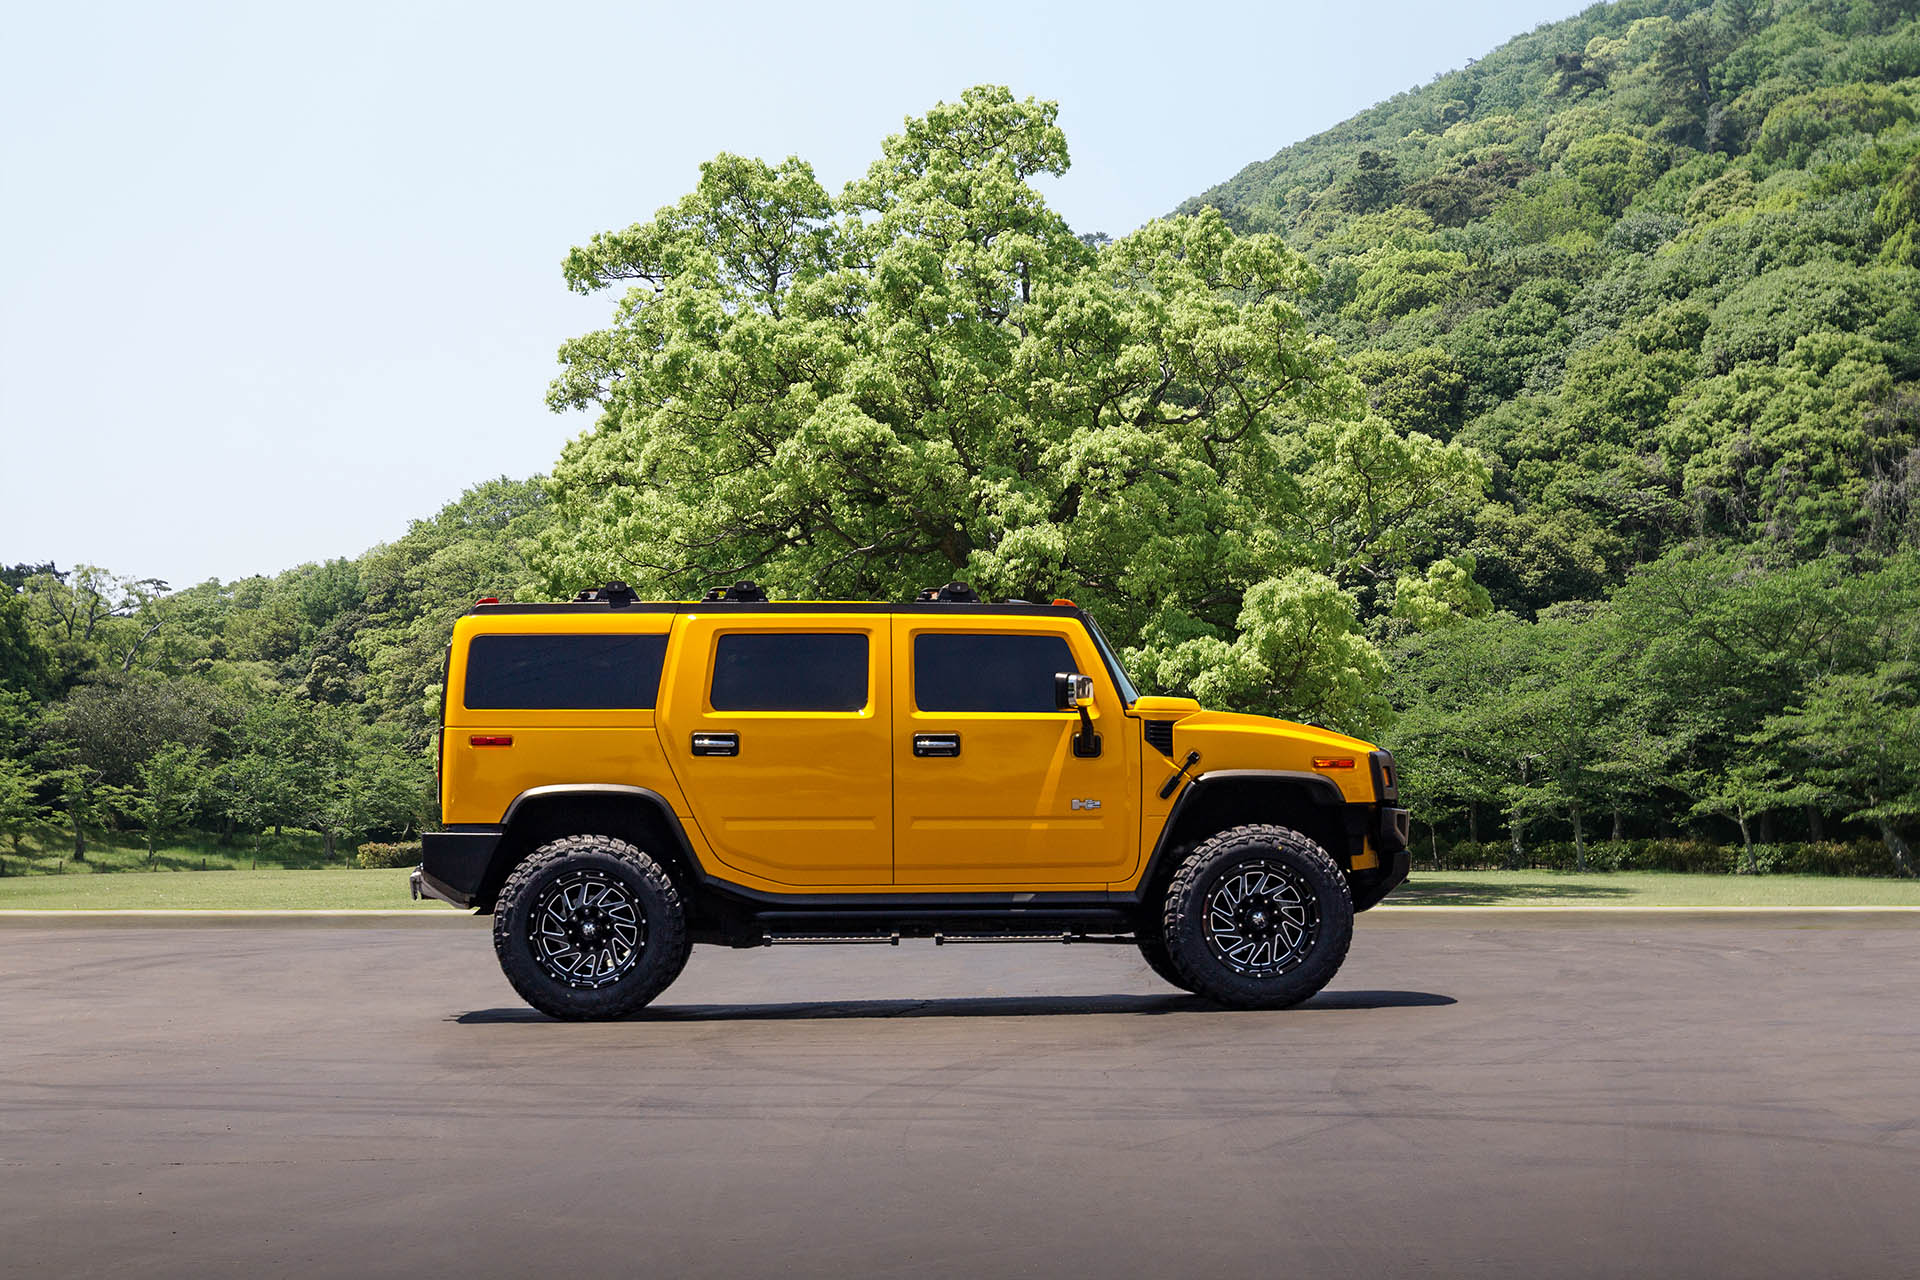 M12 OffRoad Monster Wheels on a Hummer H2